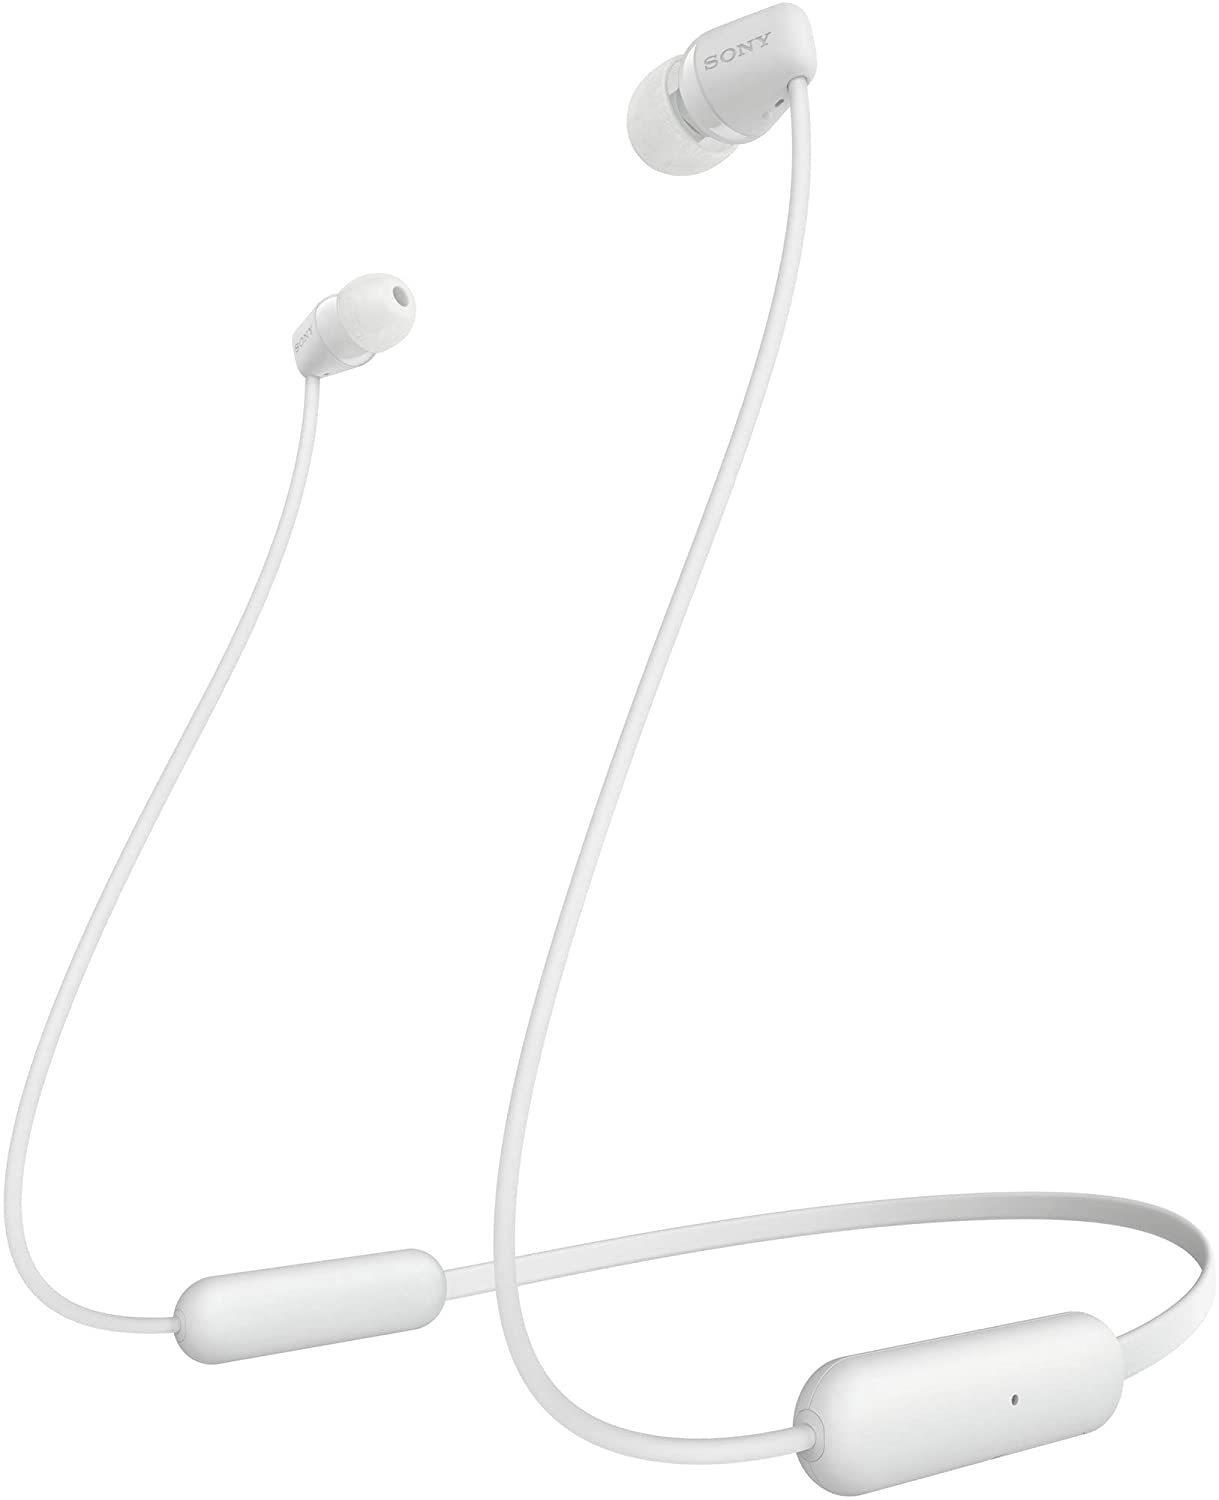 Sony WI-C200 Wireless Neck-Band Headphones With Up To 15